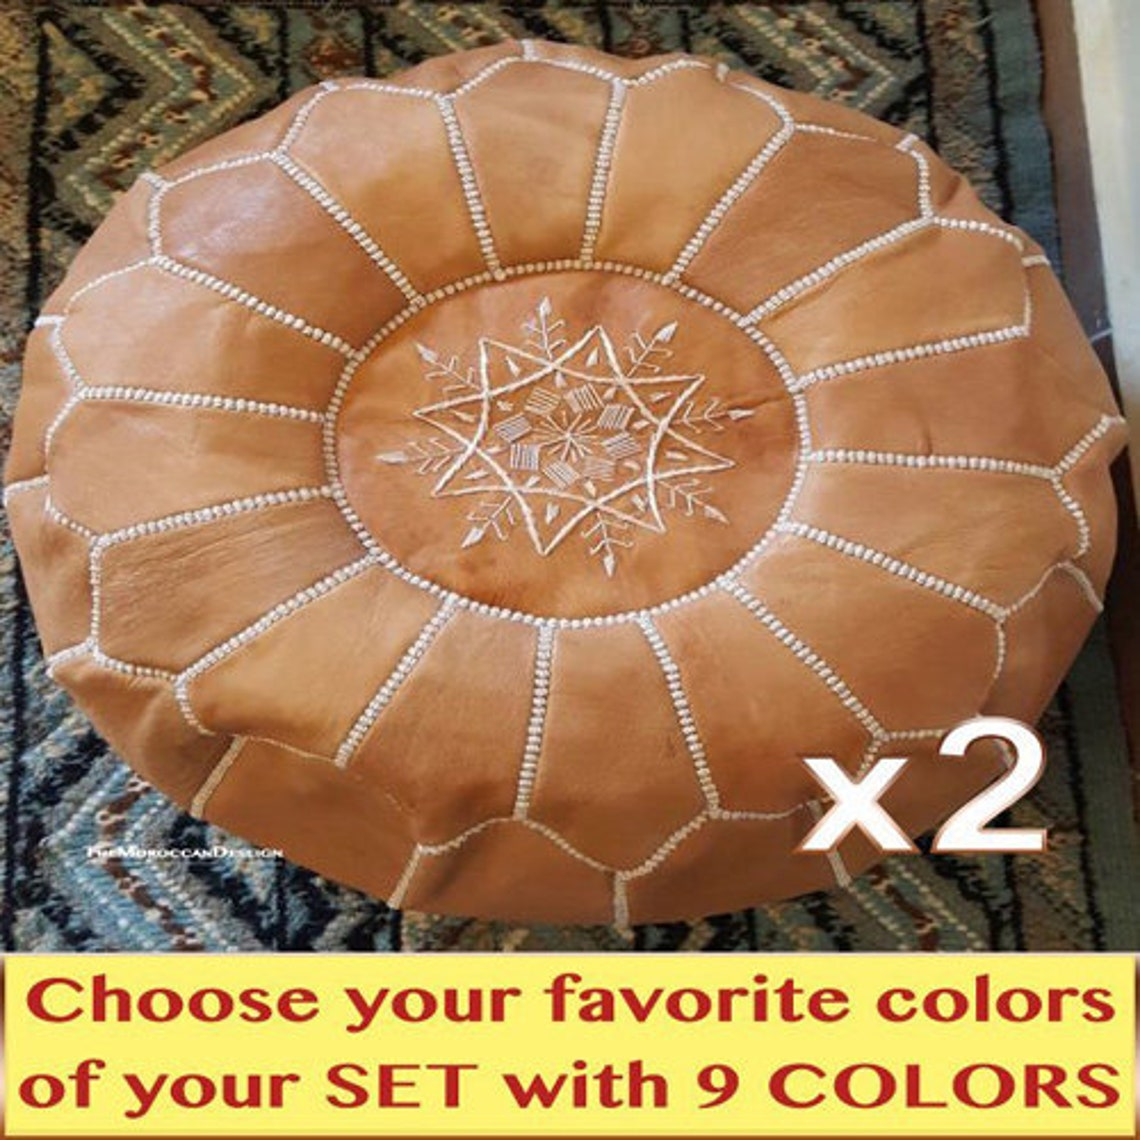 Set of X2 AMAZING MOROCCAN LEATHER Pouf Footstoole Handmade Ottman Poufe , Leather pouf, Luxury poufs, Moroccan home Boho decor , #Colors